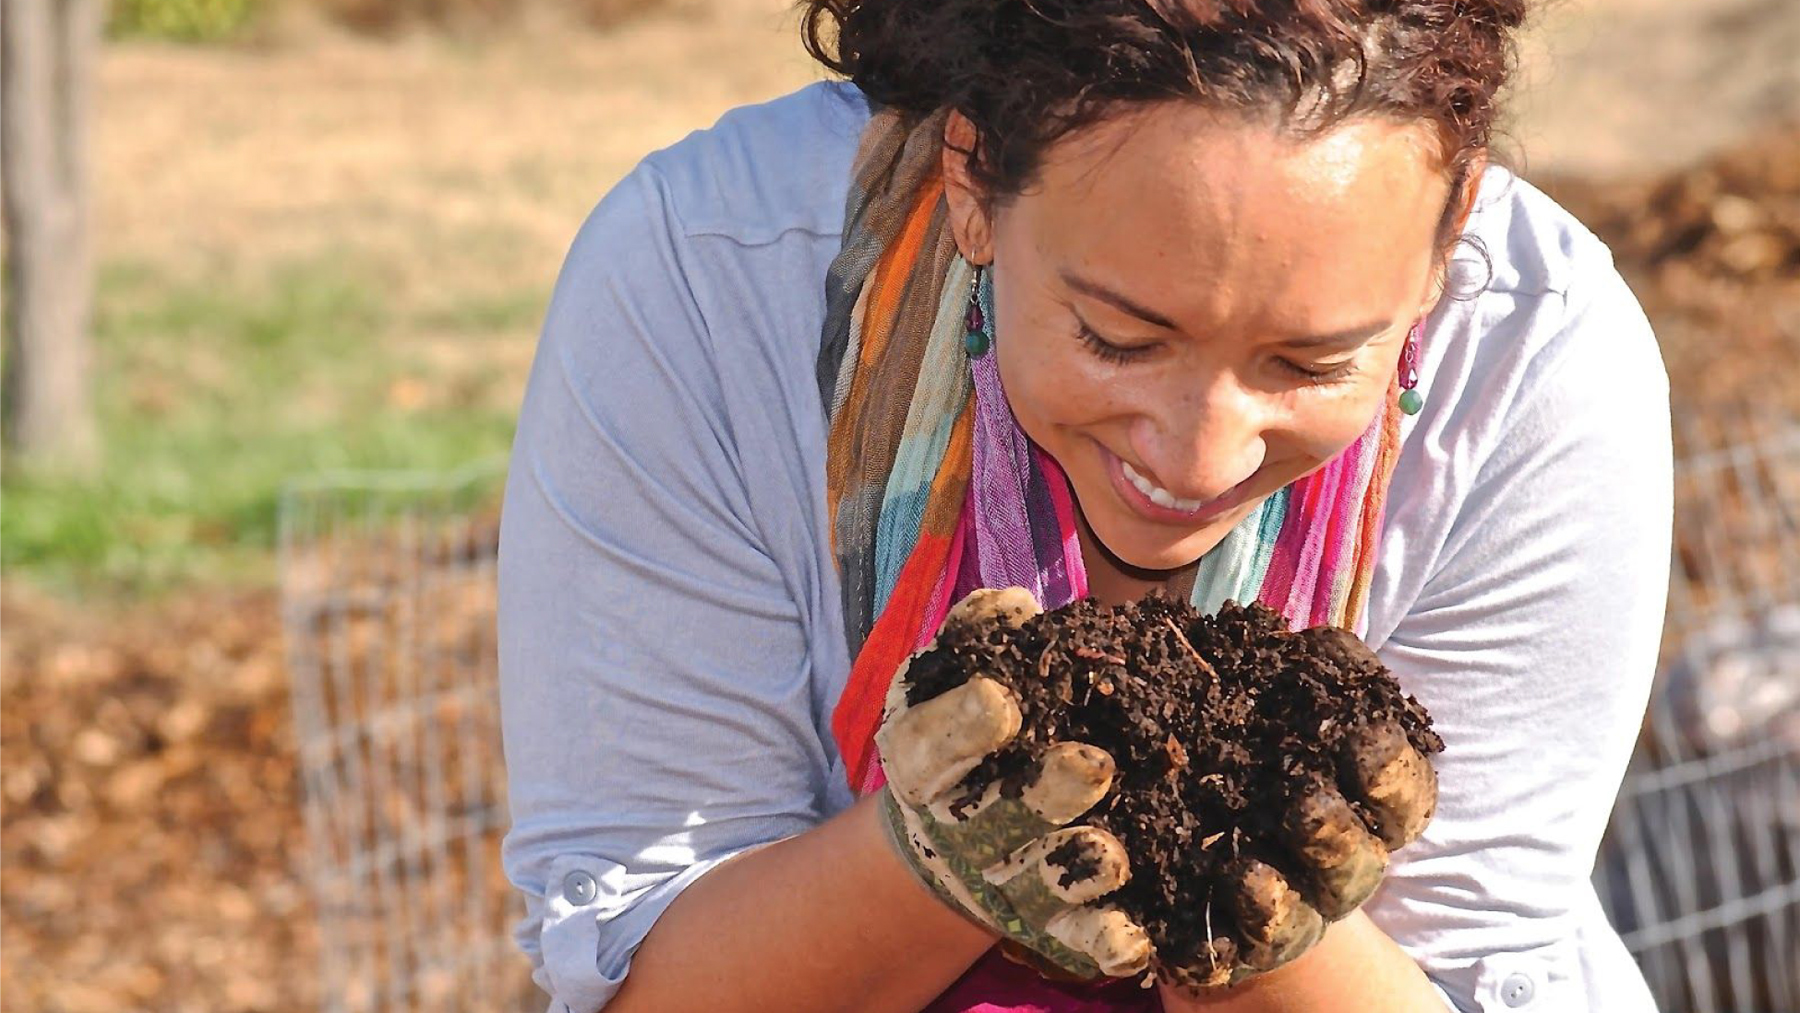 A smiling woman examines soil up close in her hands while gardening.